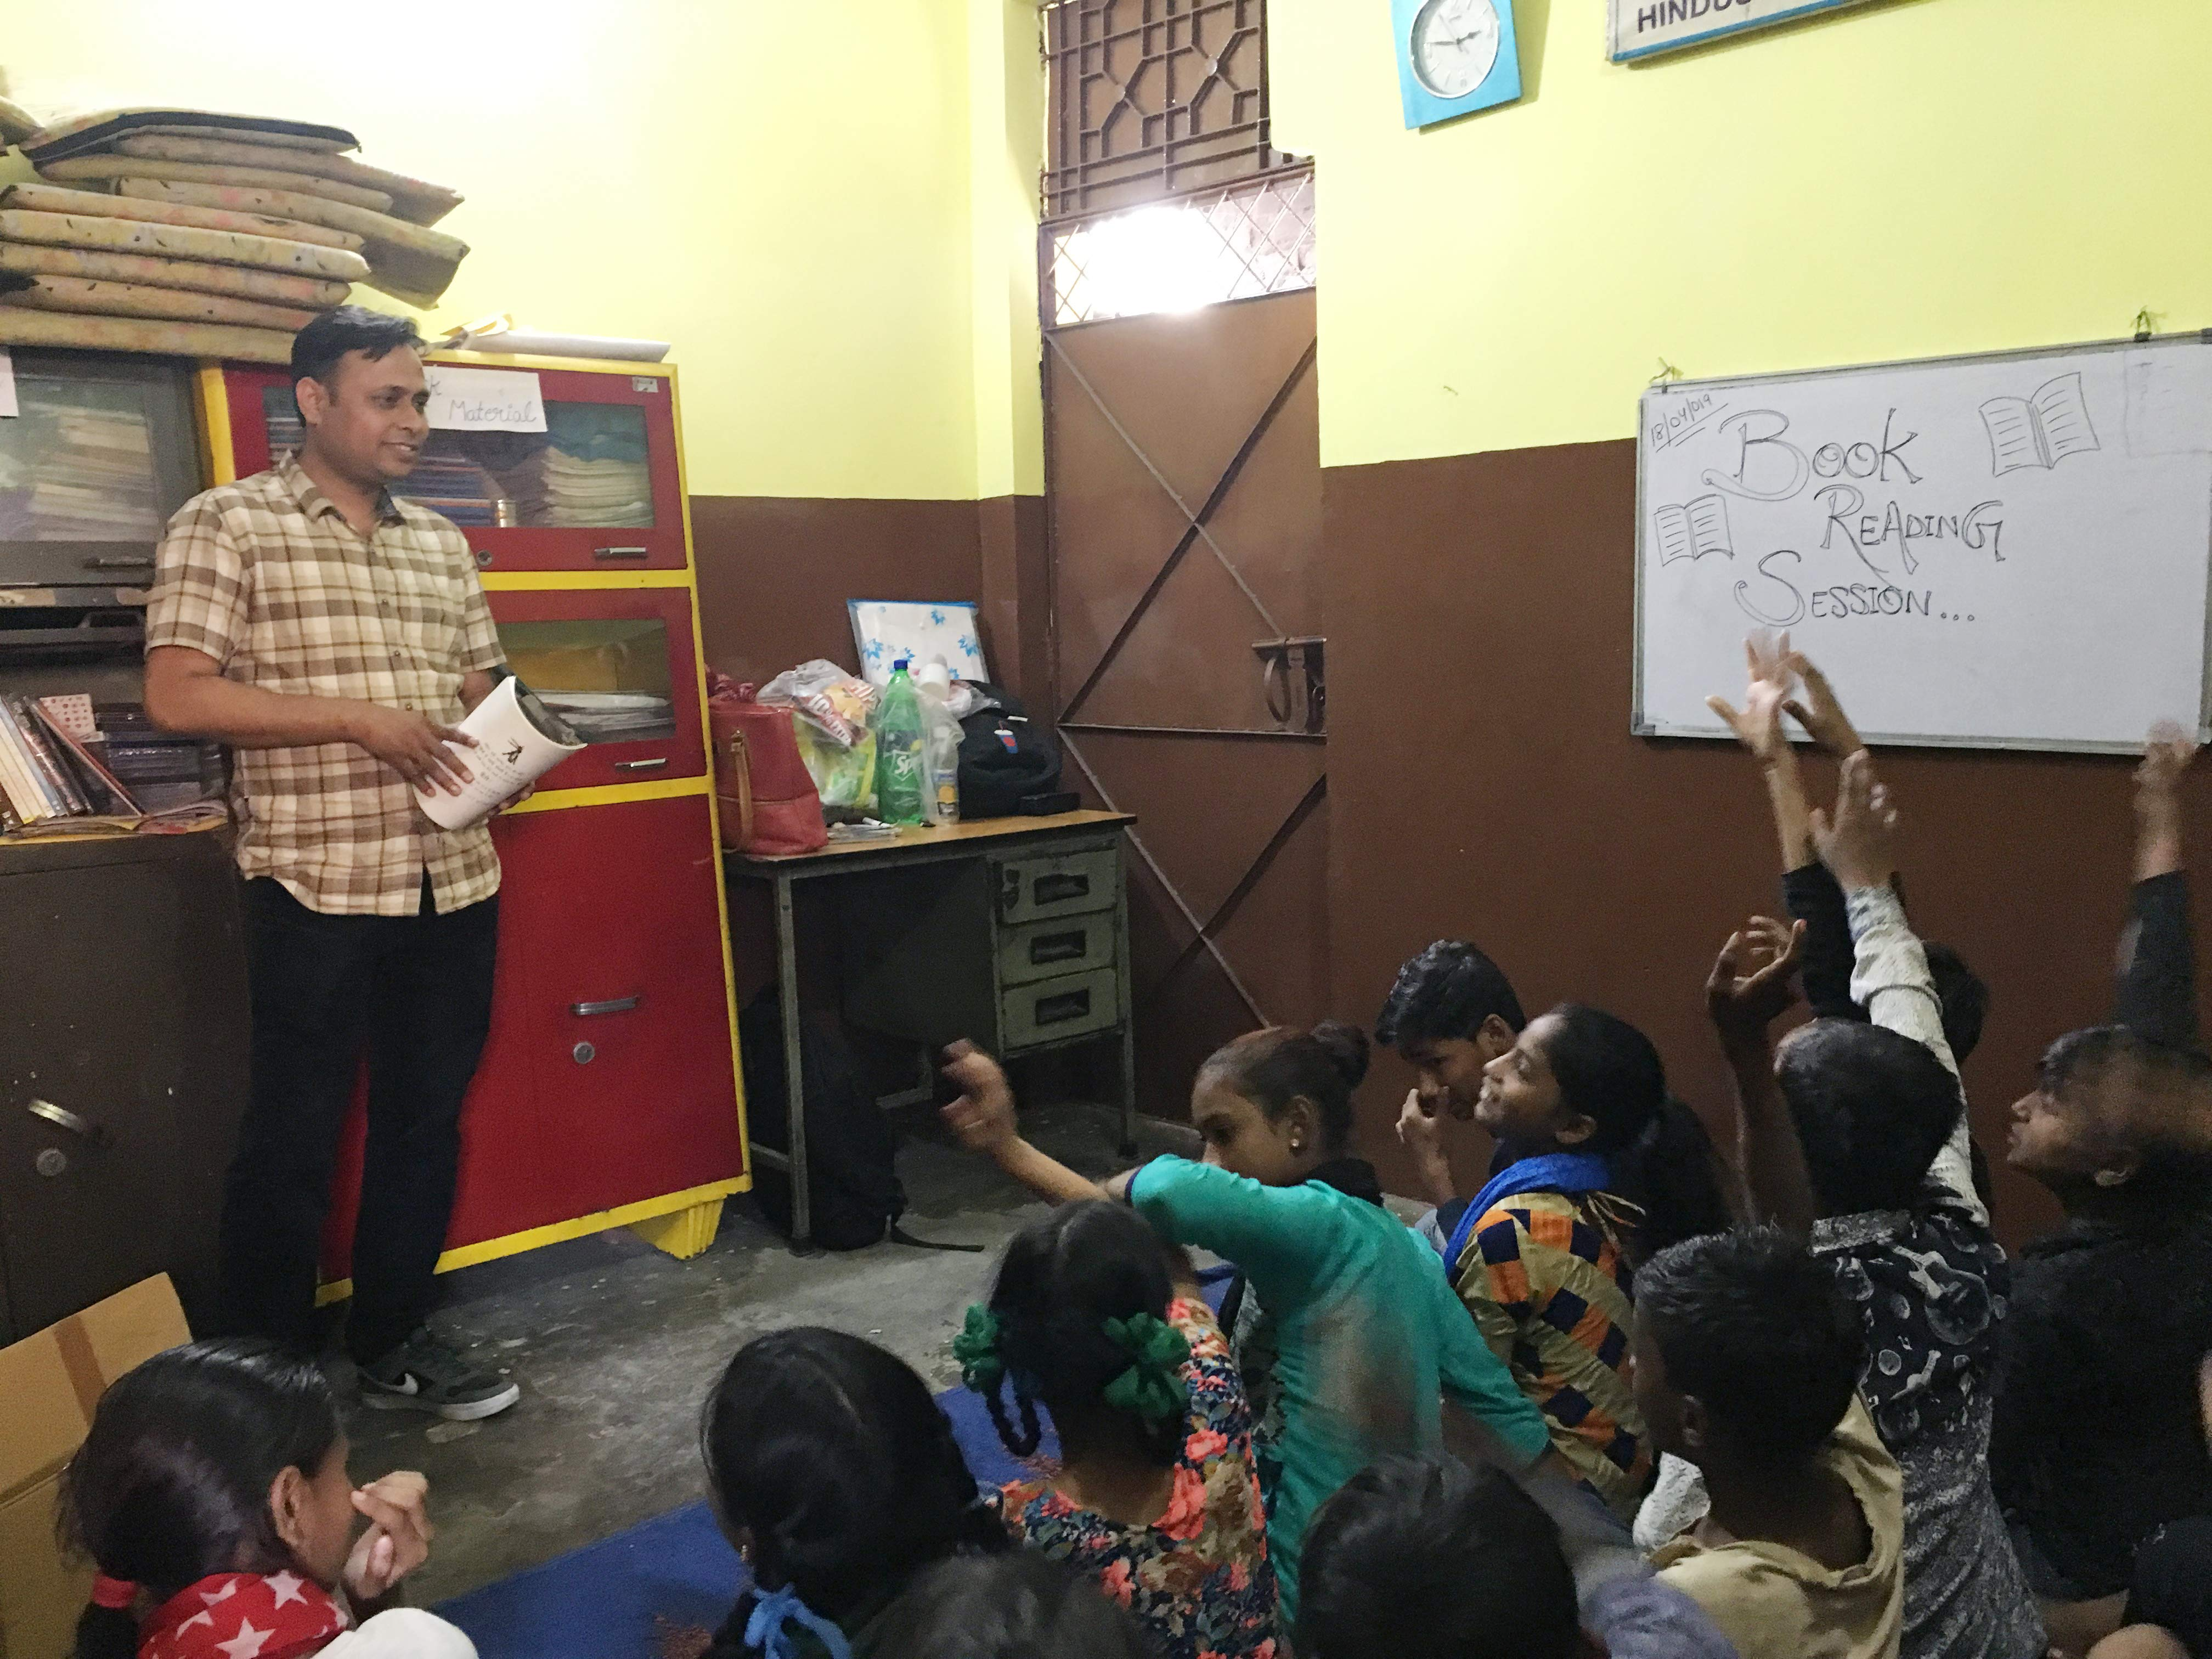 Group reading sessions for young children